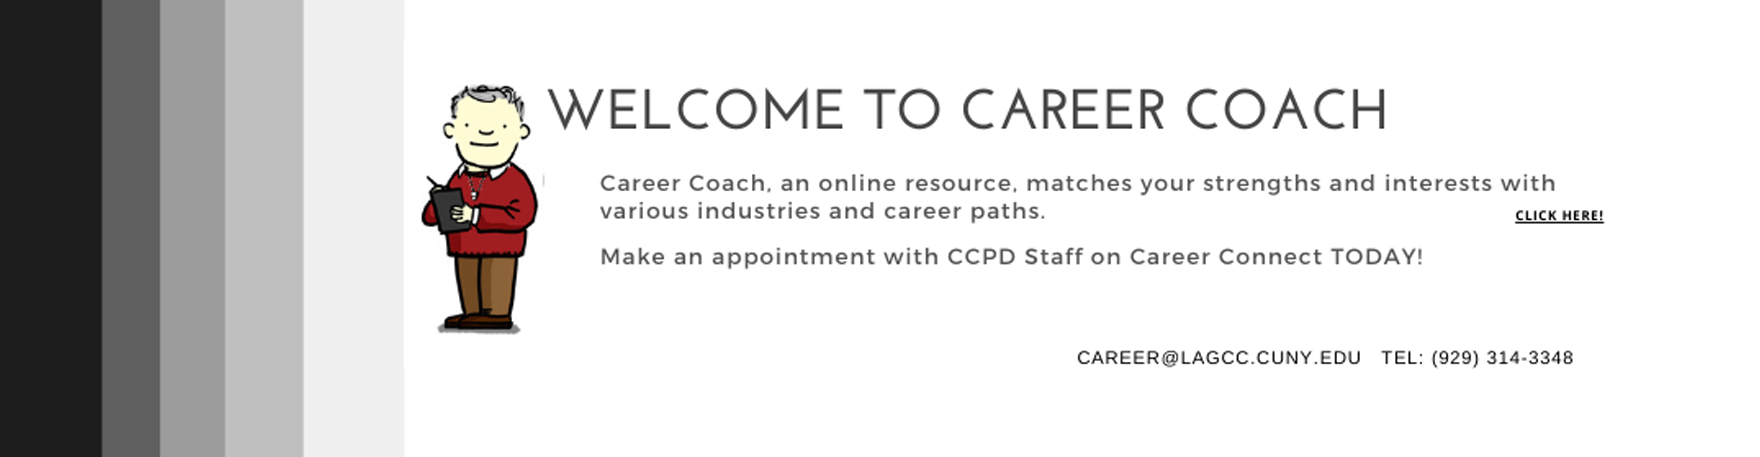 1. Career Coach Banner